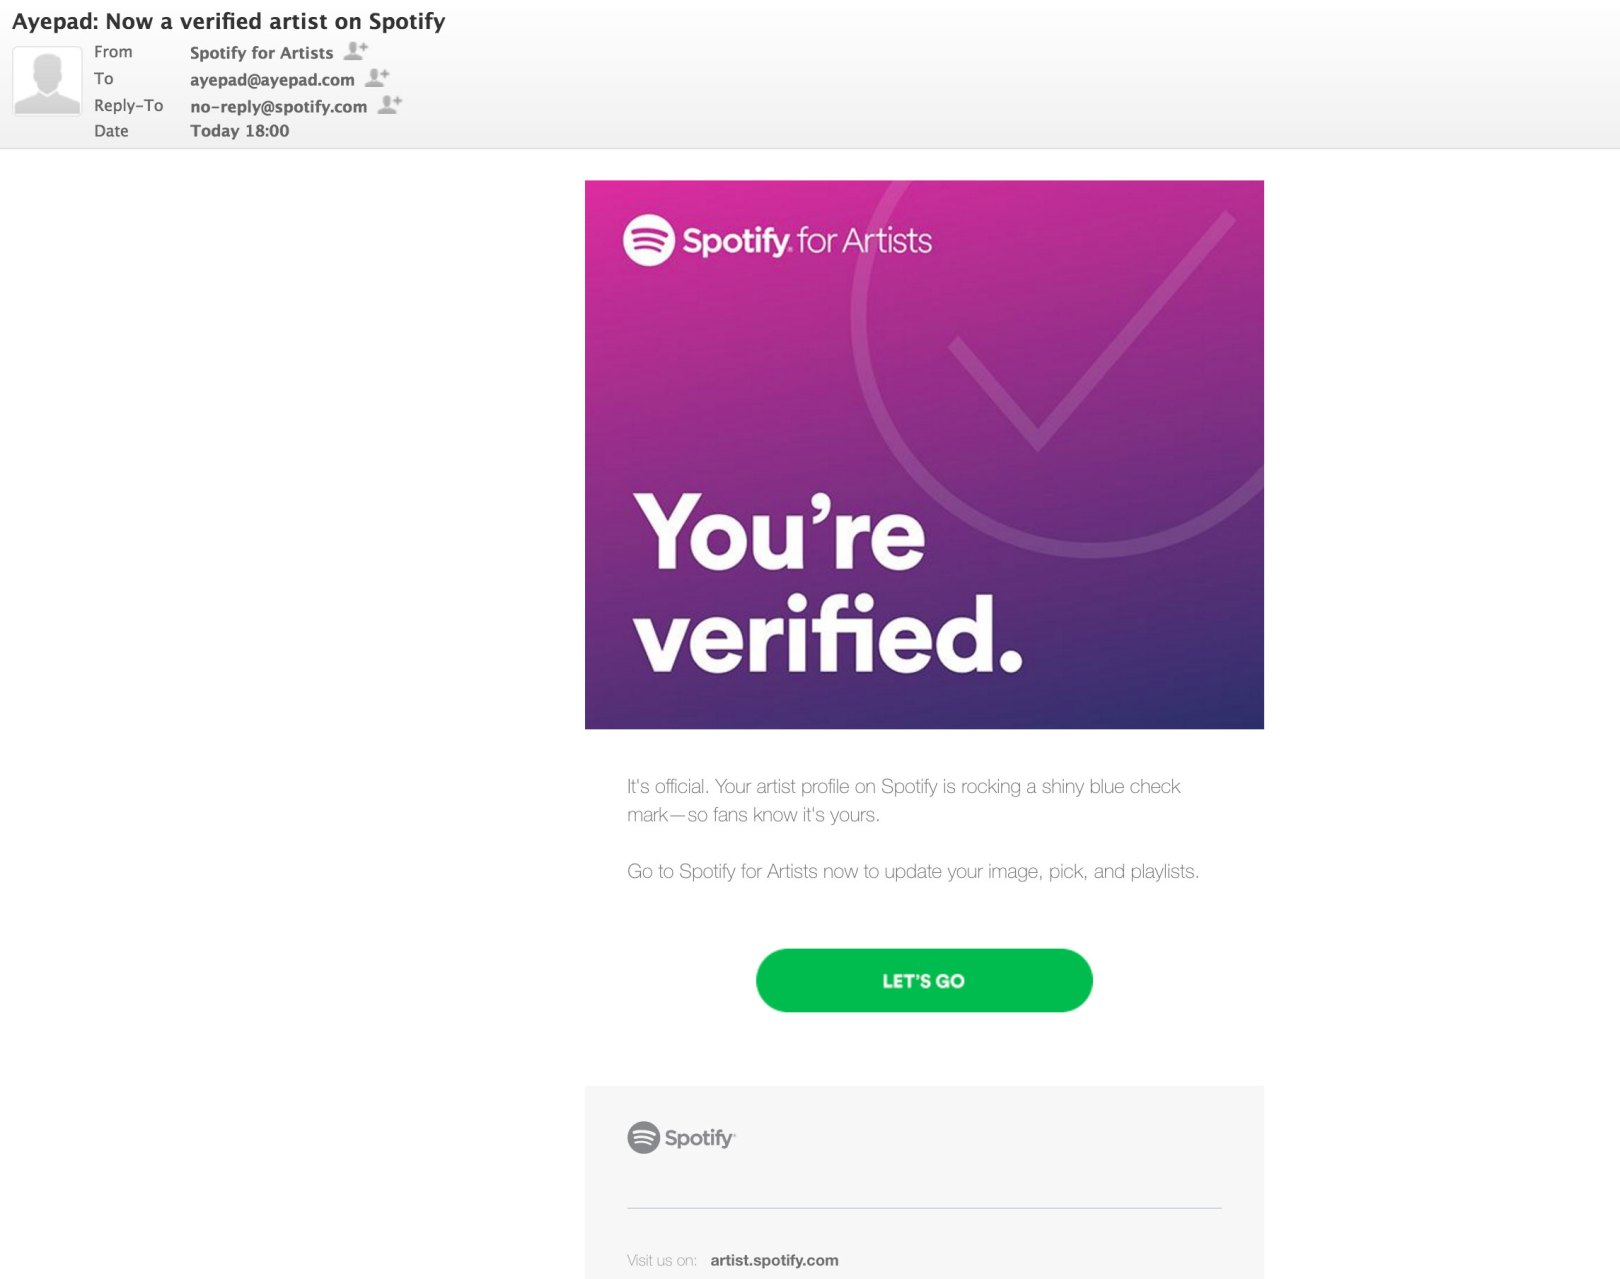 Email from Spotify